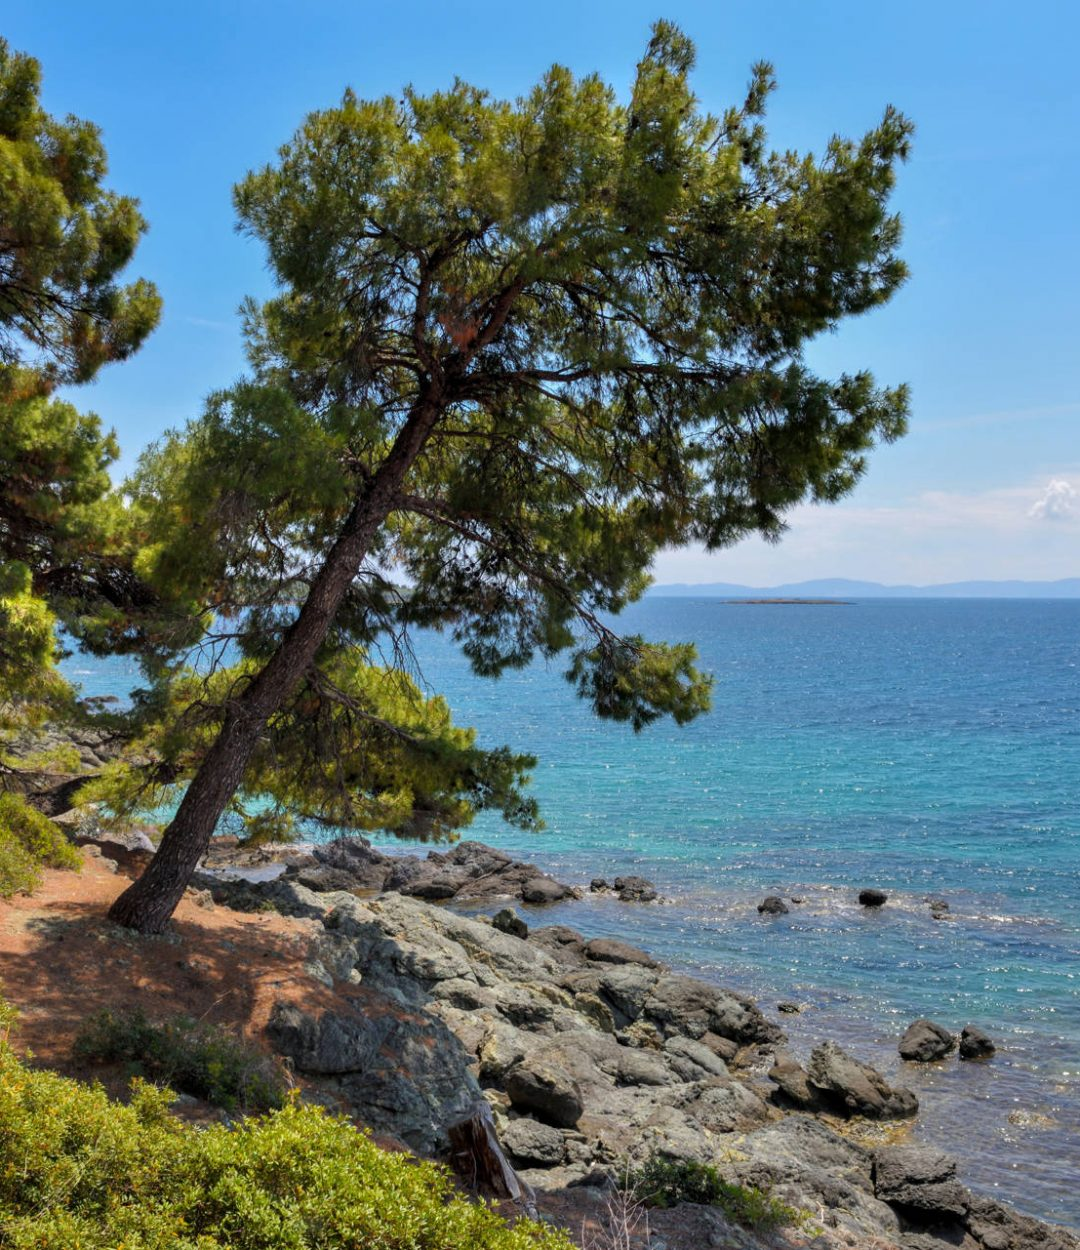 sea-view-from-beach-pine-forest-tree-by-the-sea-in-TXGU6R4